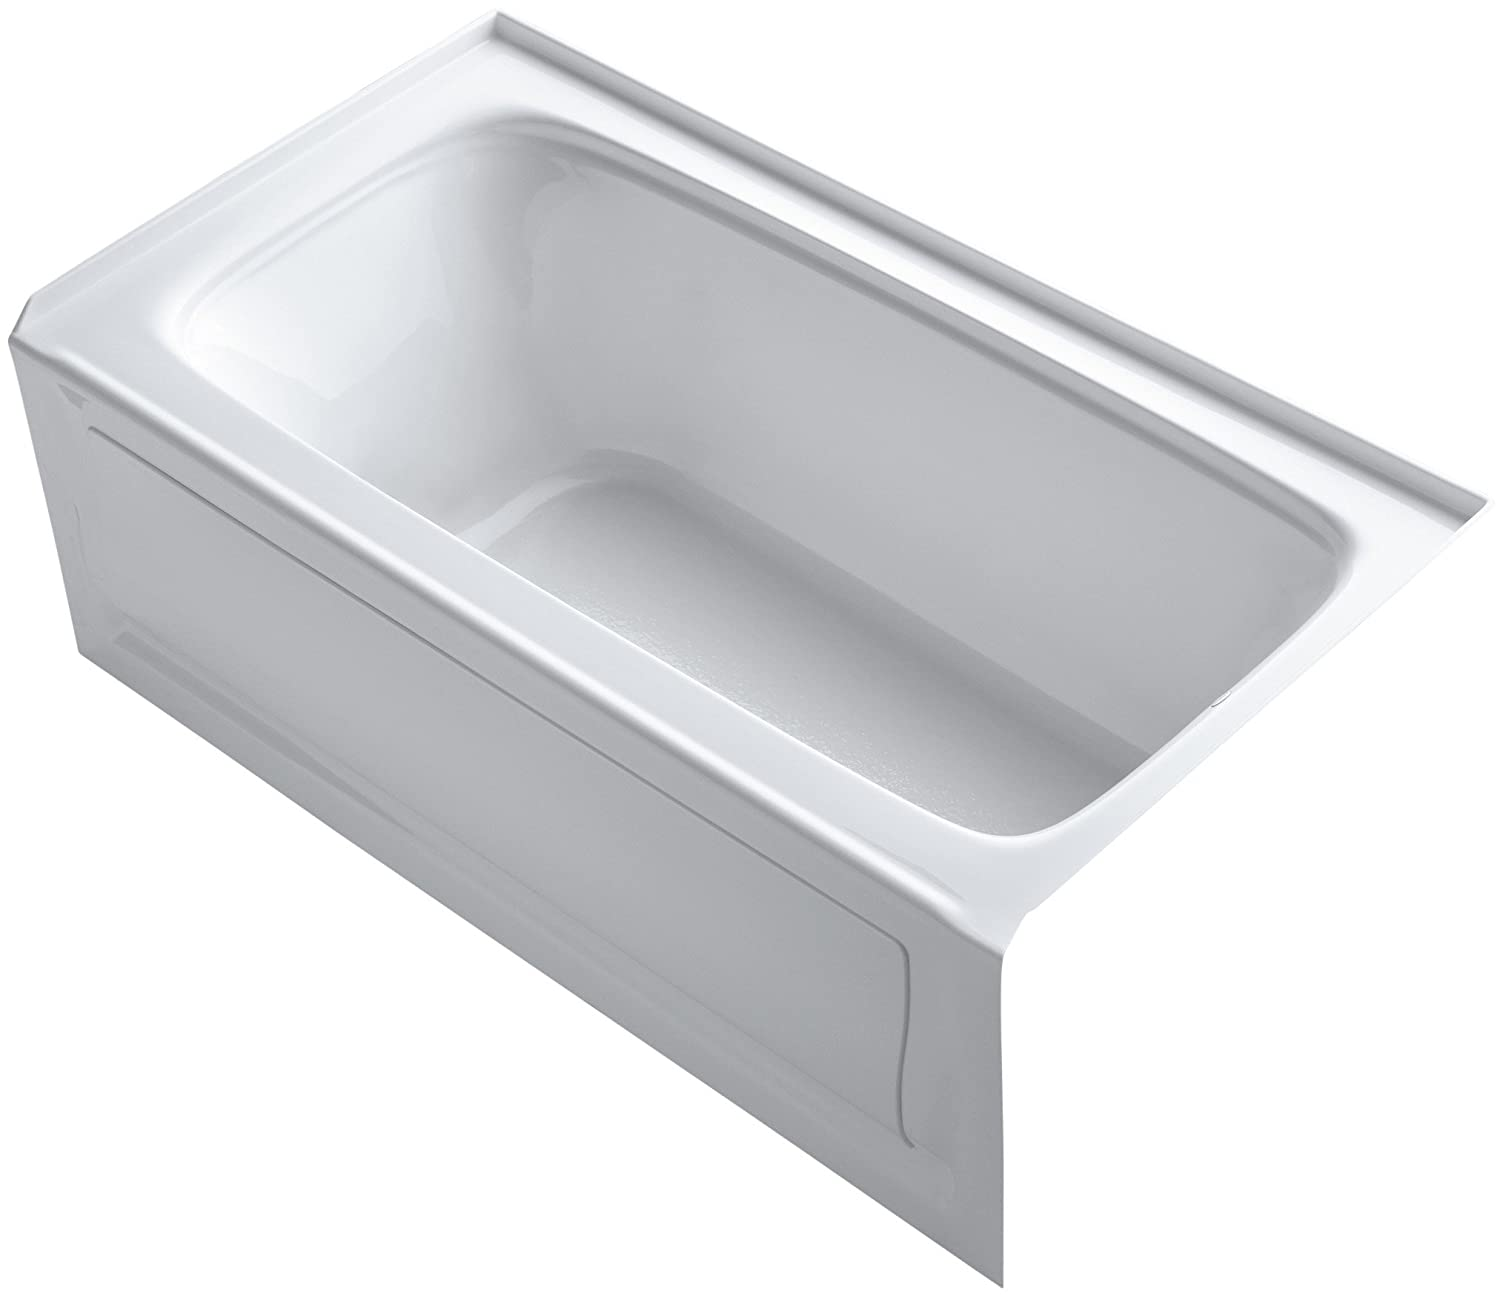 KOHLER K-1150-RA-0 Bancroft 5-Foot Bath with Right-Hand Drain, White ...